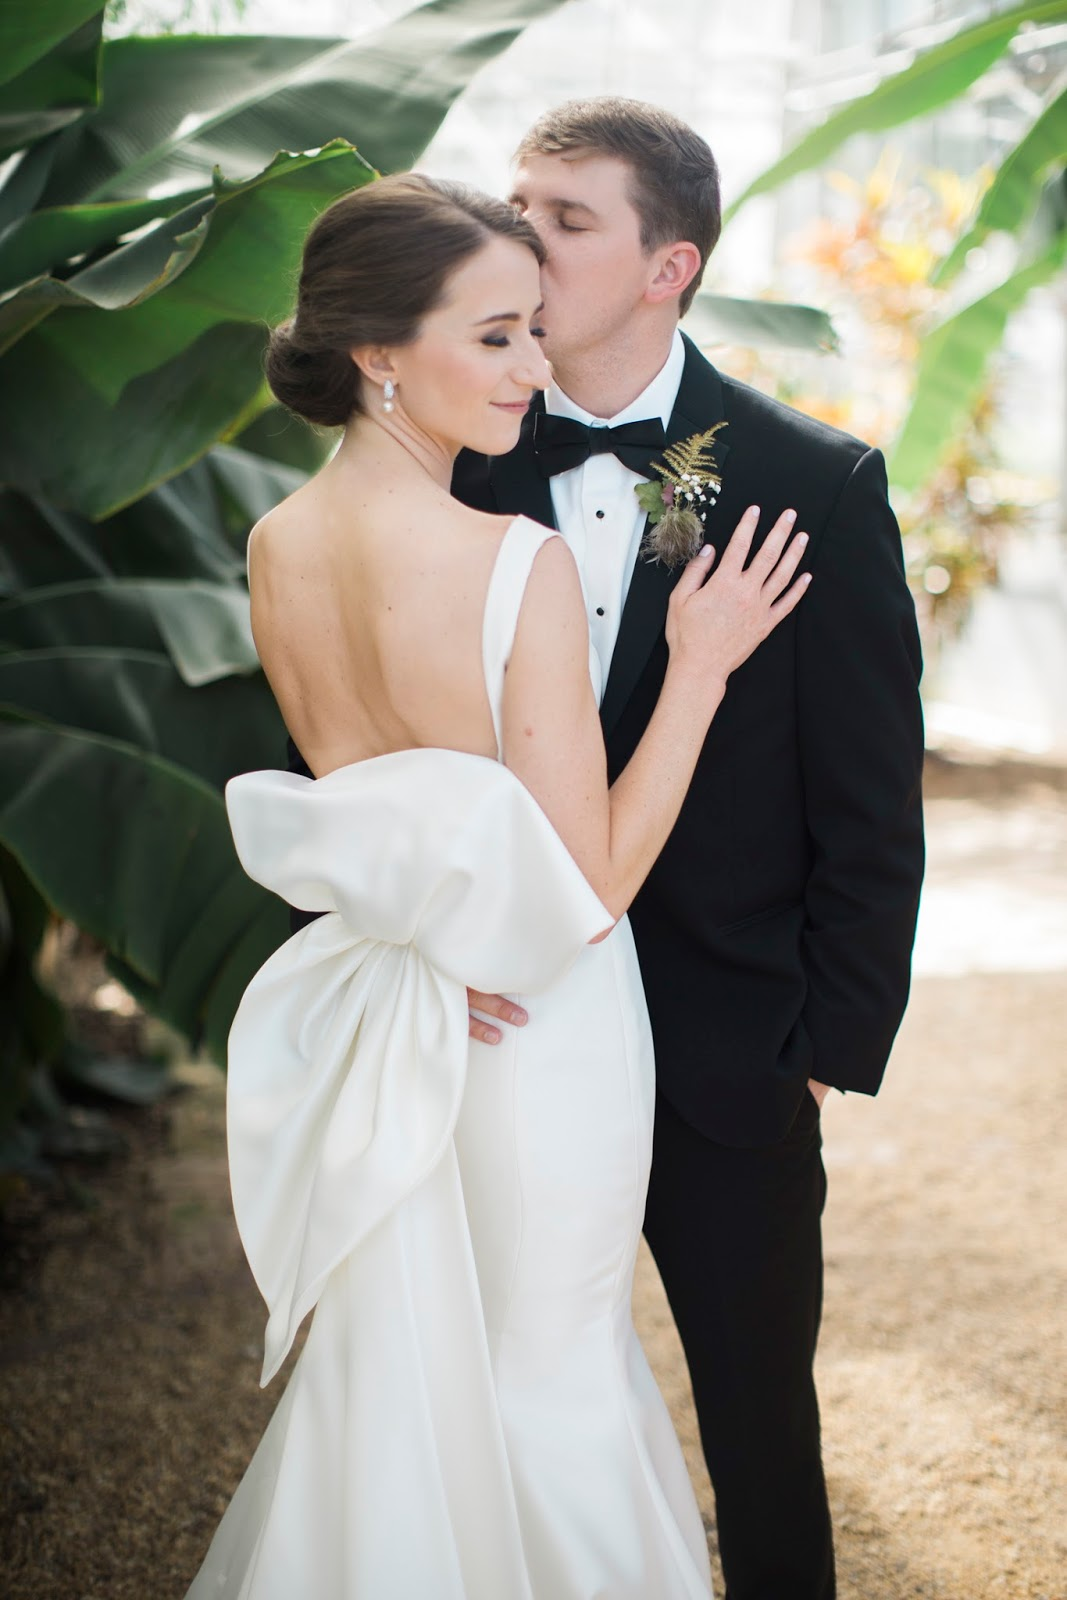 Southeastern Bride - Maggie + Charlie's Classic Birmingham Wedding was featured in 2017 on Southeastern Bride photographed by Leslie Hollingsworth Photography. To see the full feature, please click here.